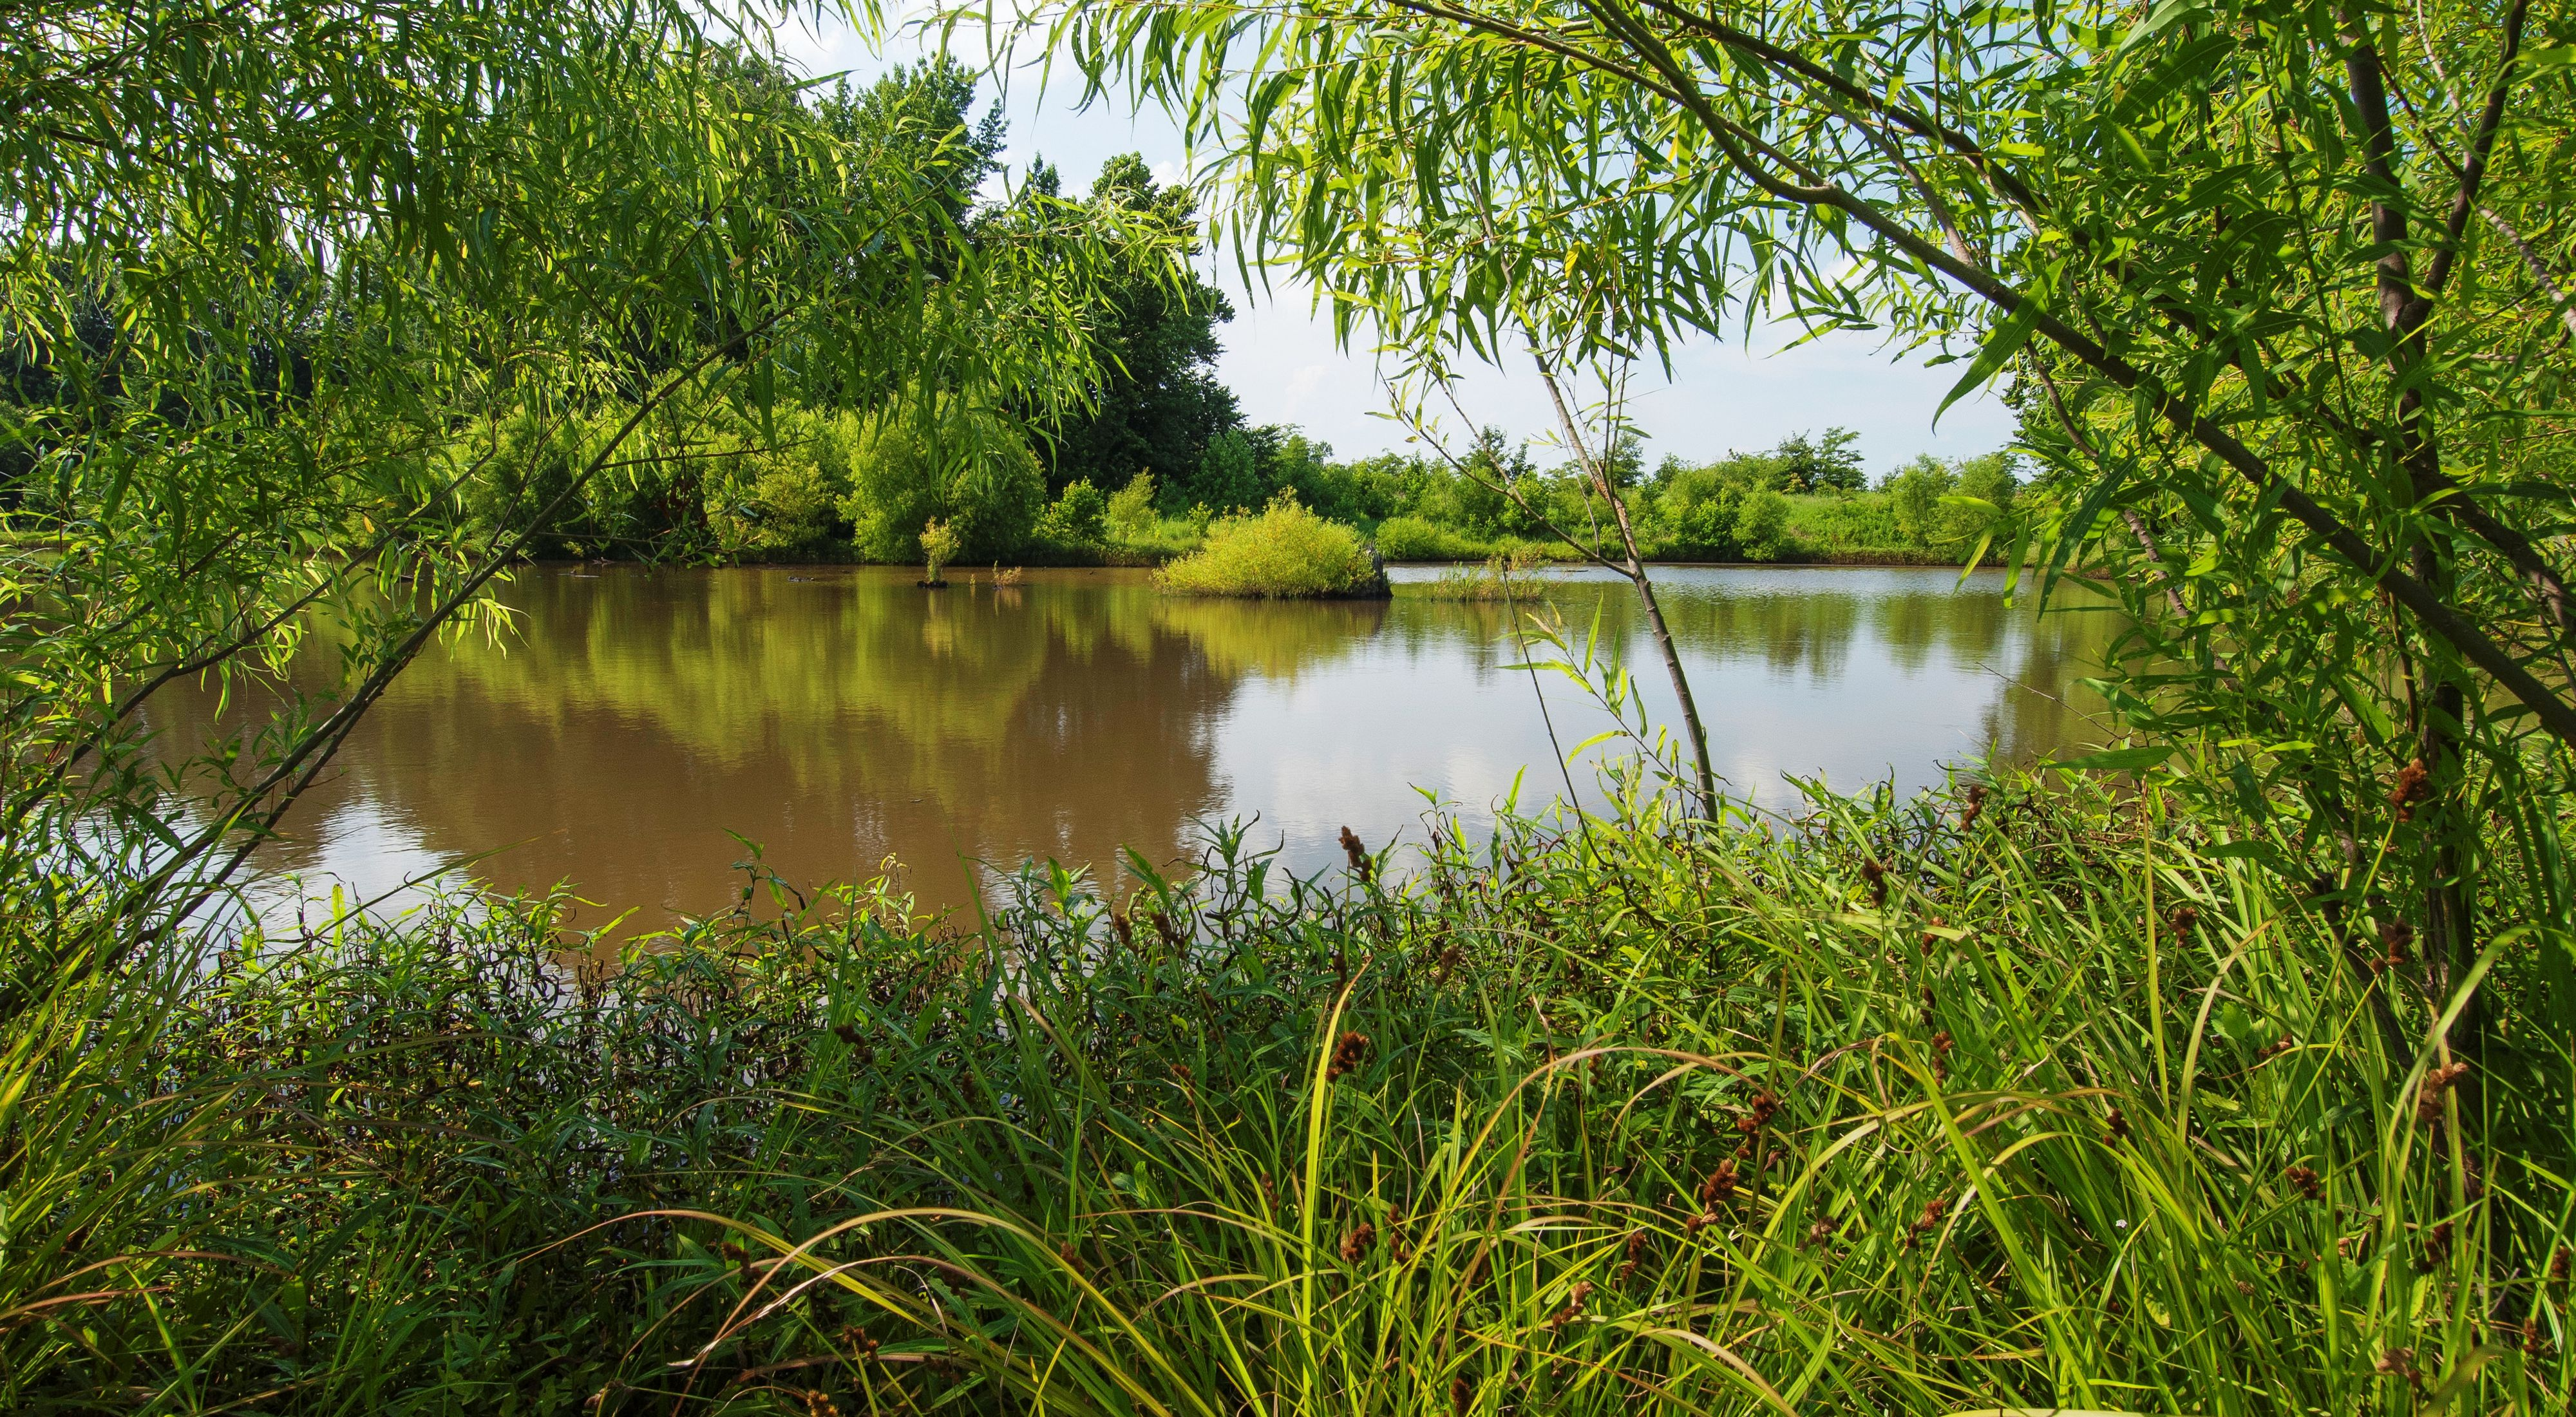 Lush vegetation frames a pond and surrounding wetlands.